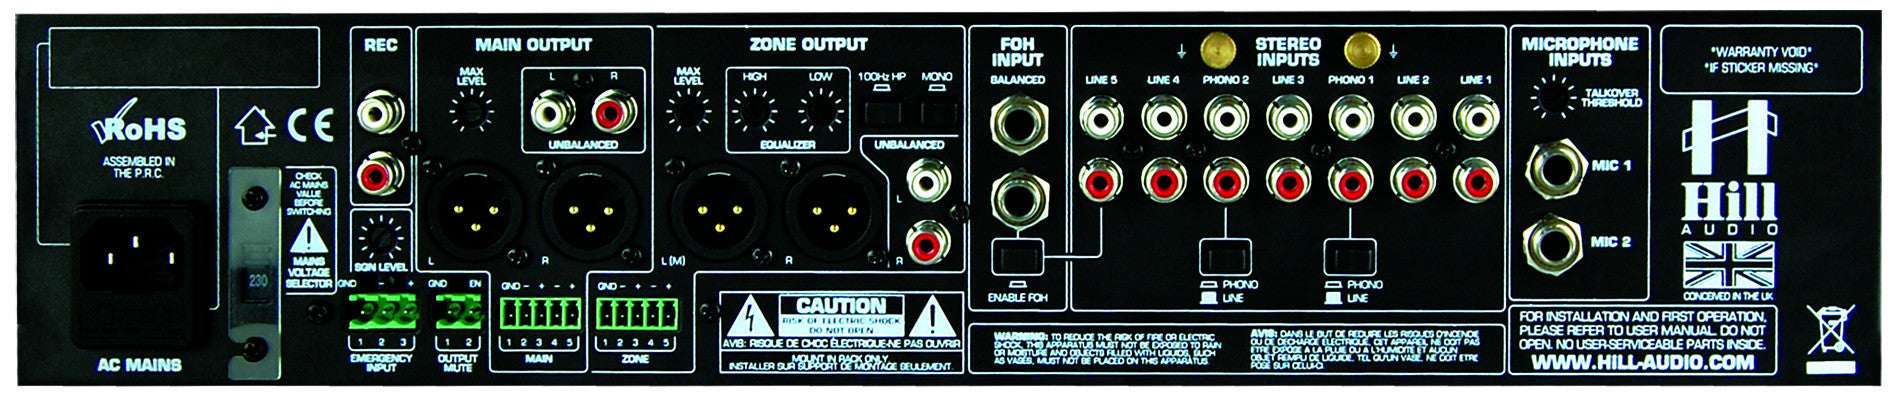 Hill Audio Zoning Mixer ZPR2820